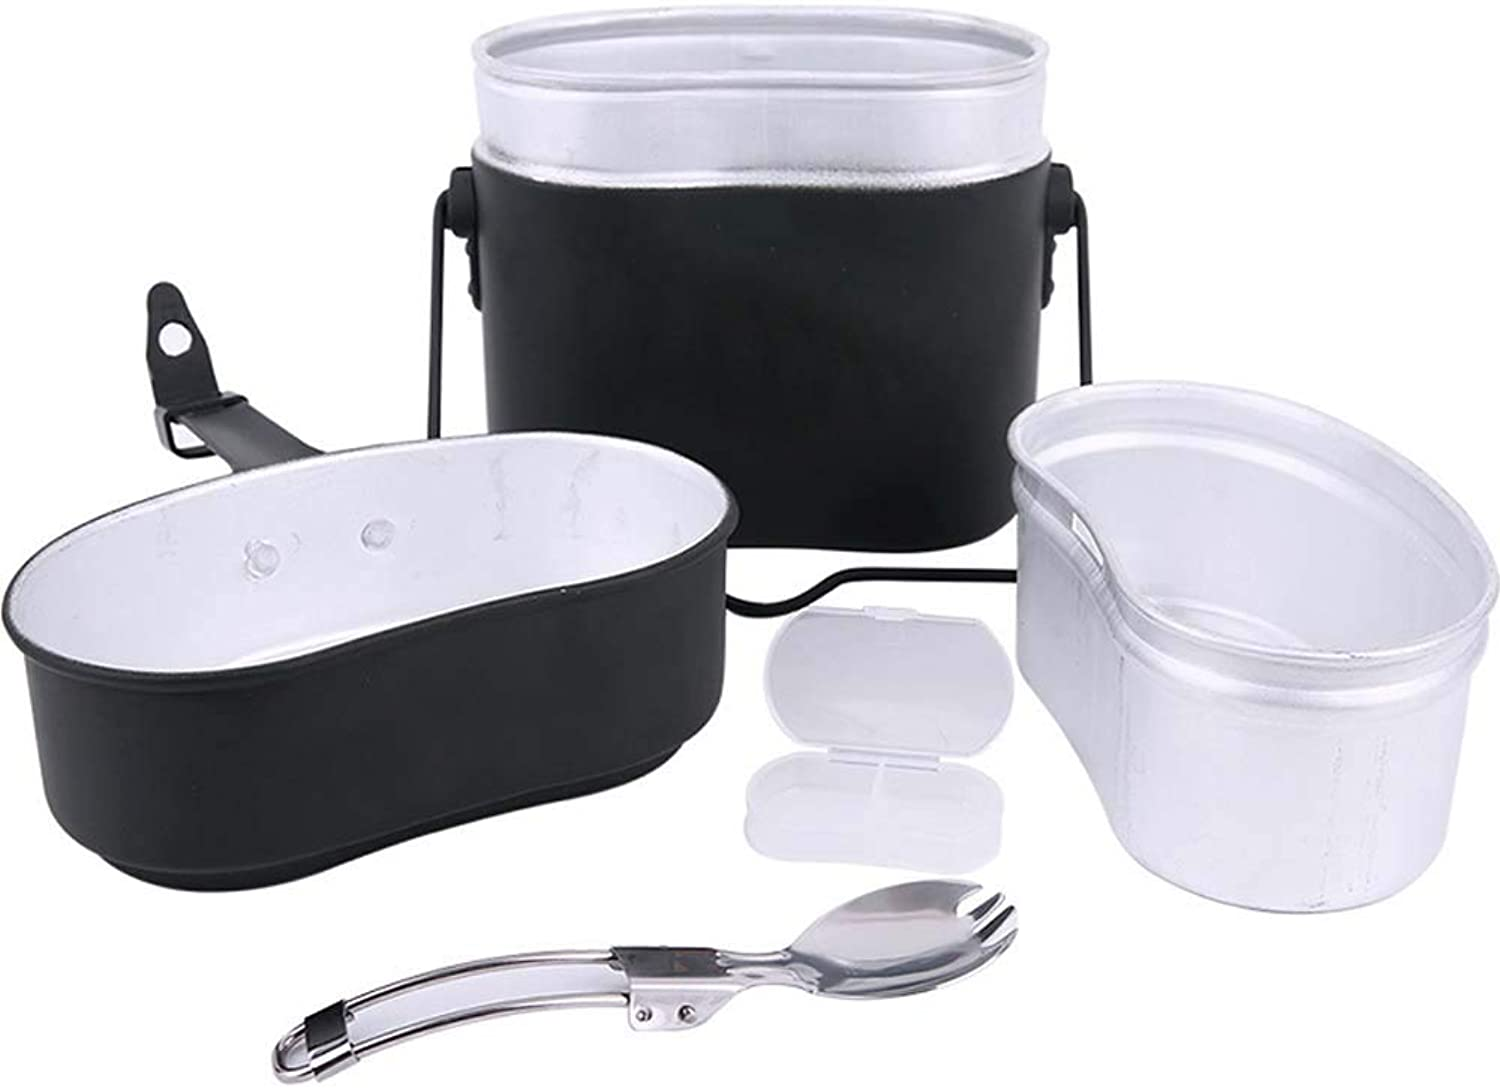 Aluminum Camping Lunch Box Kettle Portable Lunch Box Soldier Outdoor Camping Camping Hiking with Simple Tableware